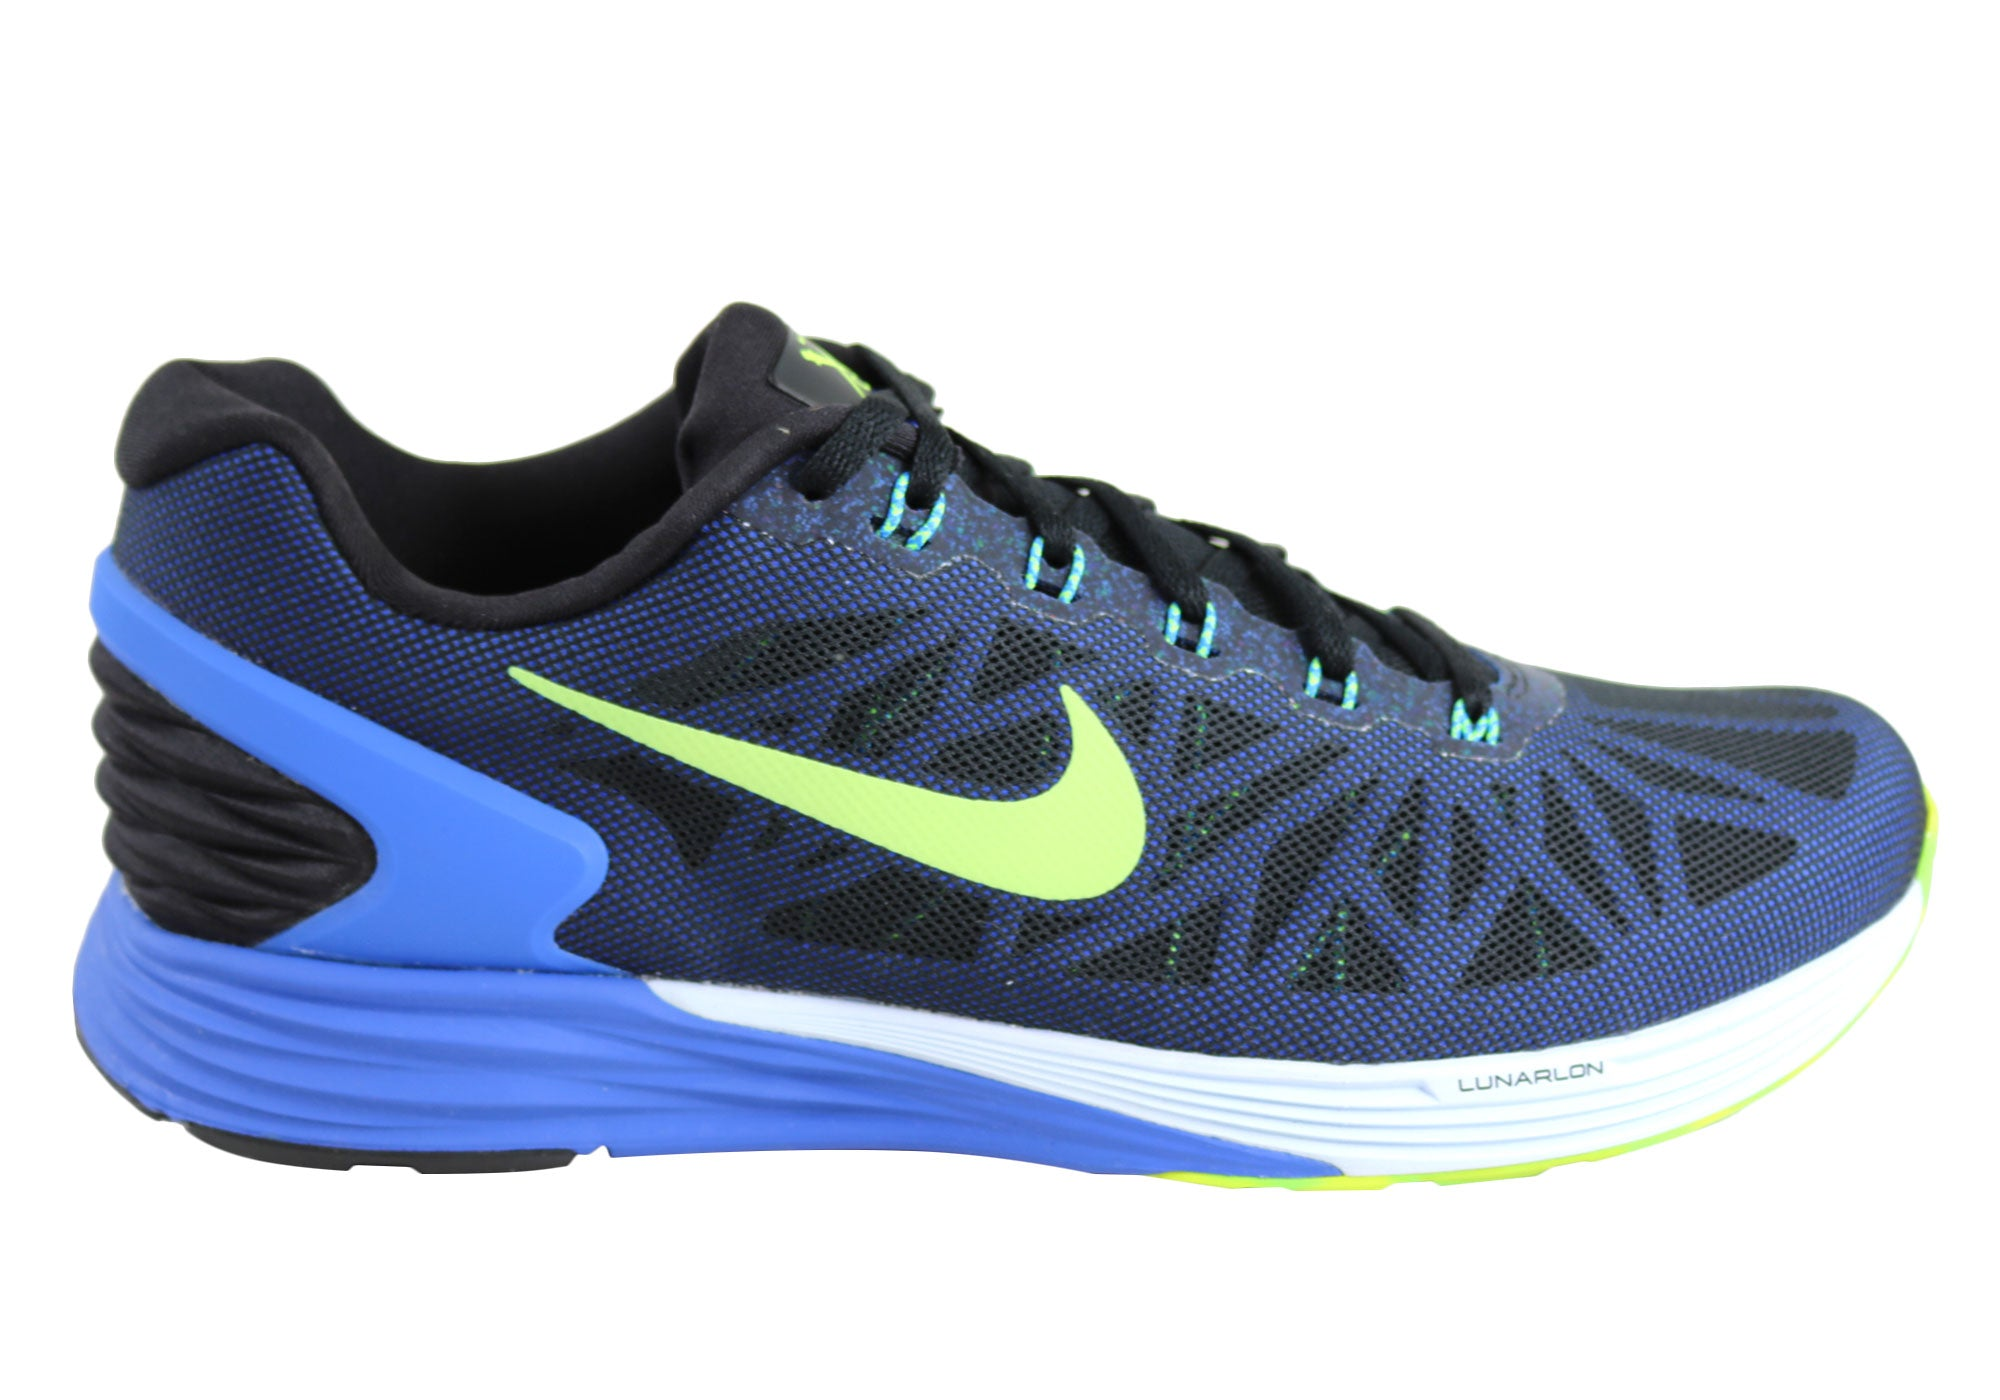 eee0910a0924 Mens Nike Lunarglide 6 Running Cushioned Sport Shoes - ModeShoesAU ...